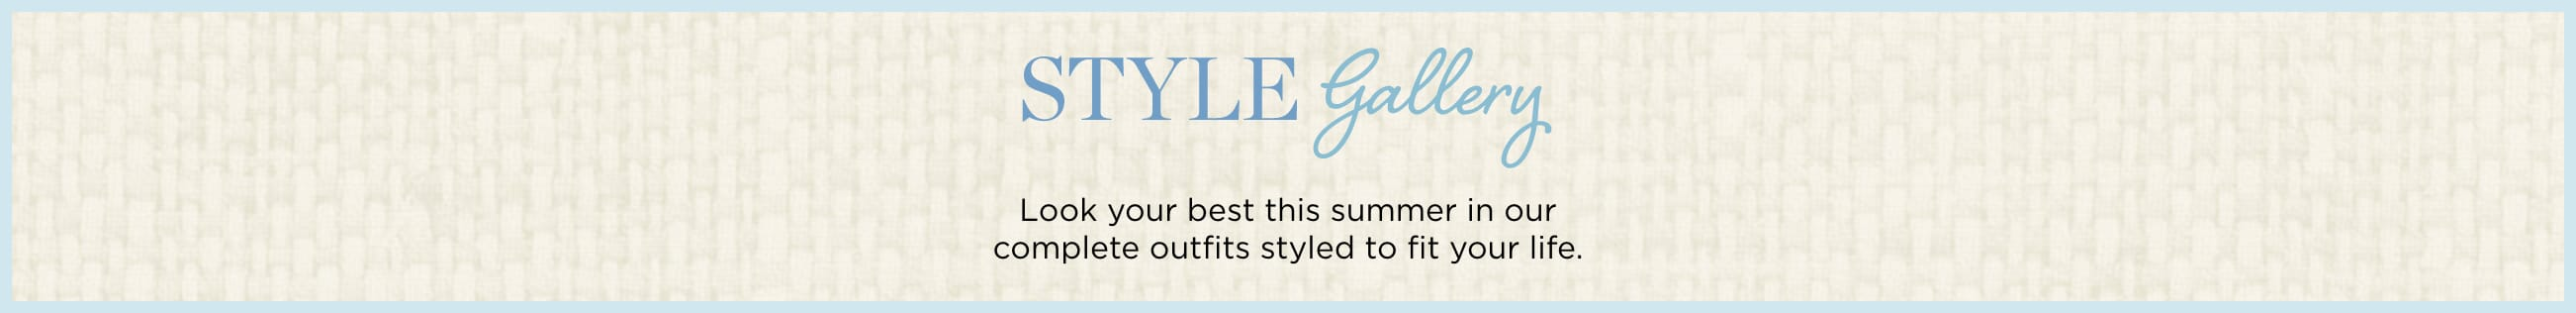 Style Gallery. Look your best this June in our complete outfits styled to fit your life.